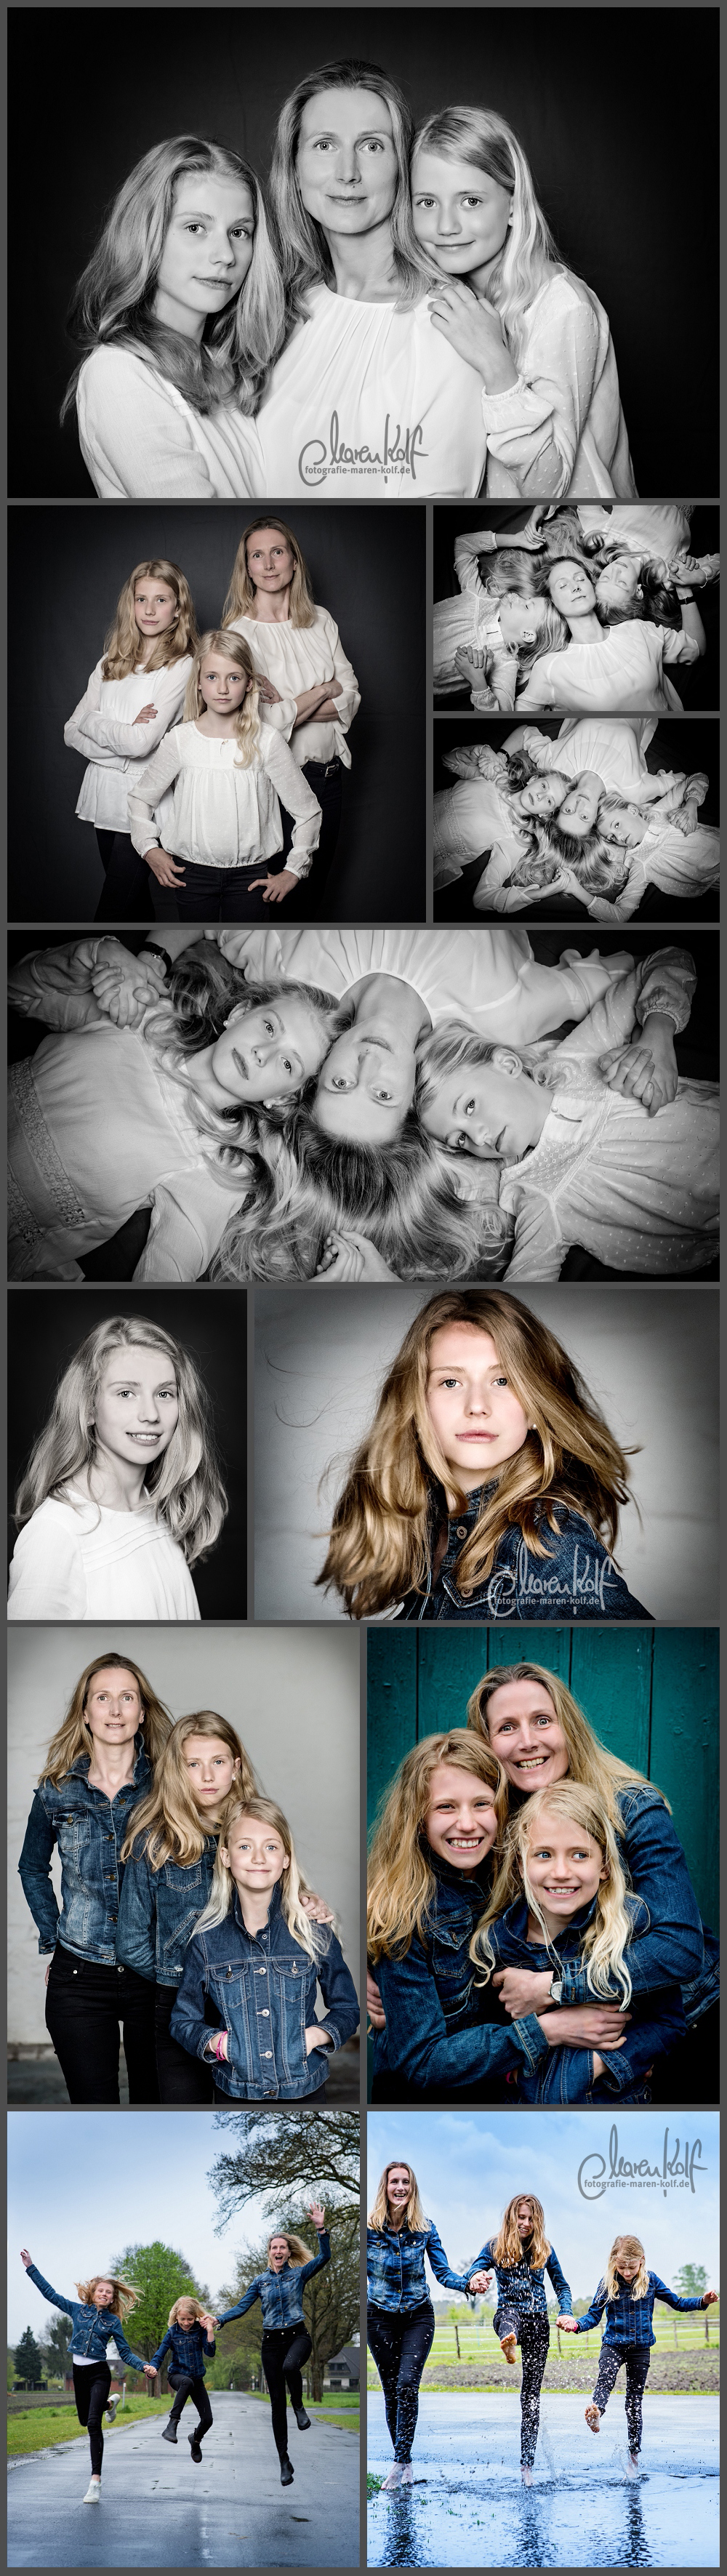 generationen-portrait-mutter-kinder-fotografie-maren-kolf-wedemark